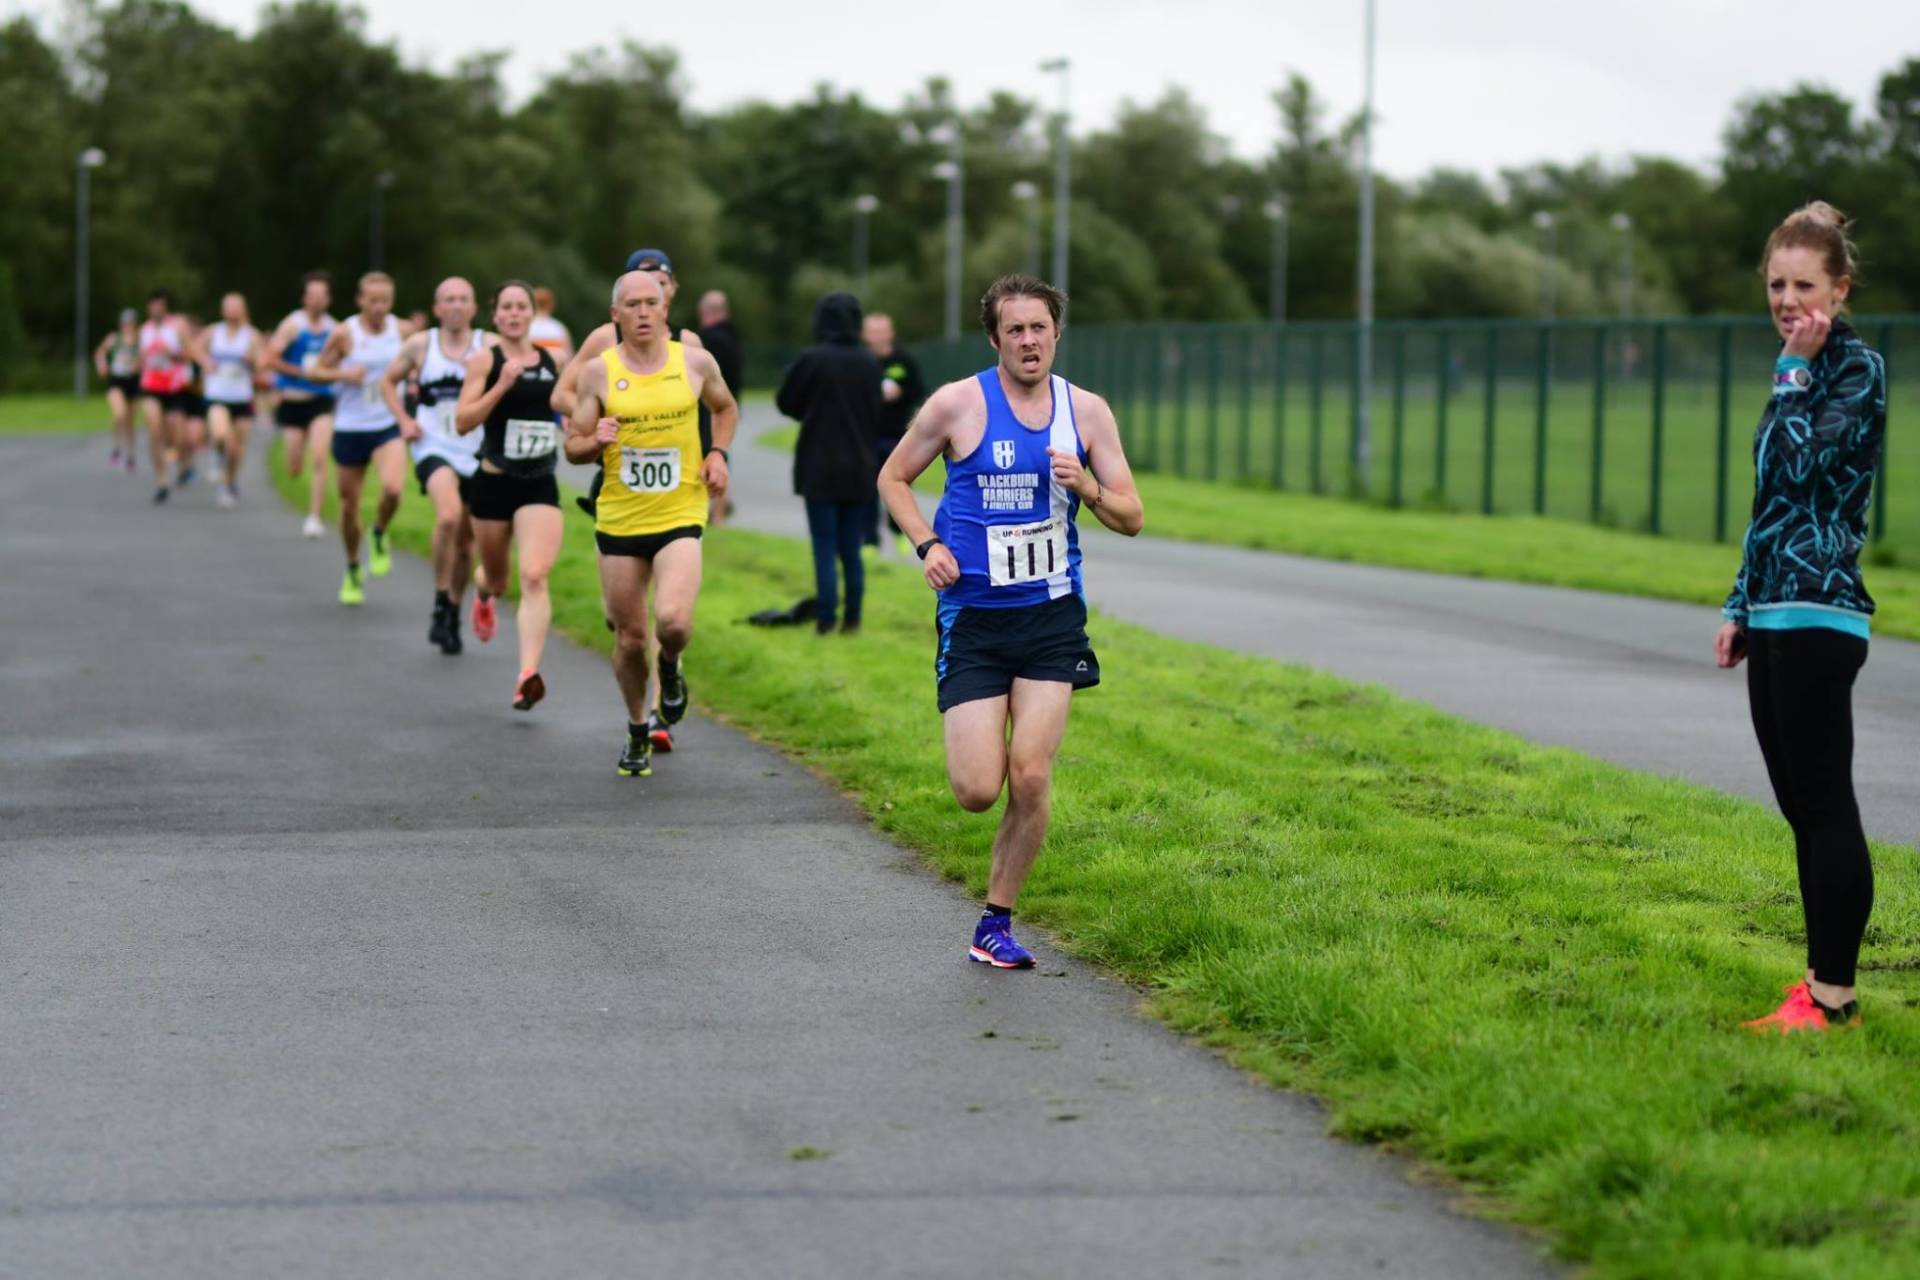 PB's for Joe & Amy + a Win for Tony at Trafford – Seasons Best for Karl at Podium 5k – Holly 4th in Germany – Wins for Tobi and Nicky at Trafford Medal Meeting – Pilling 10k